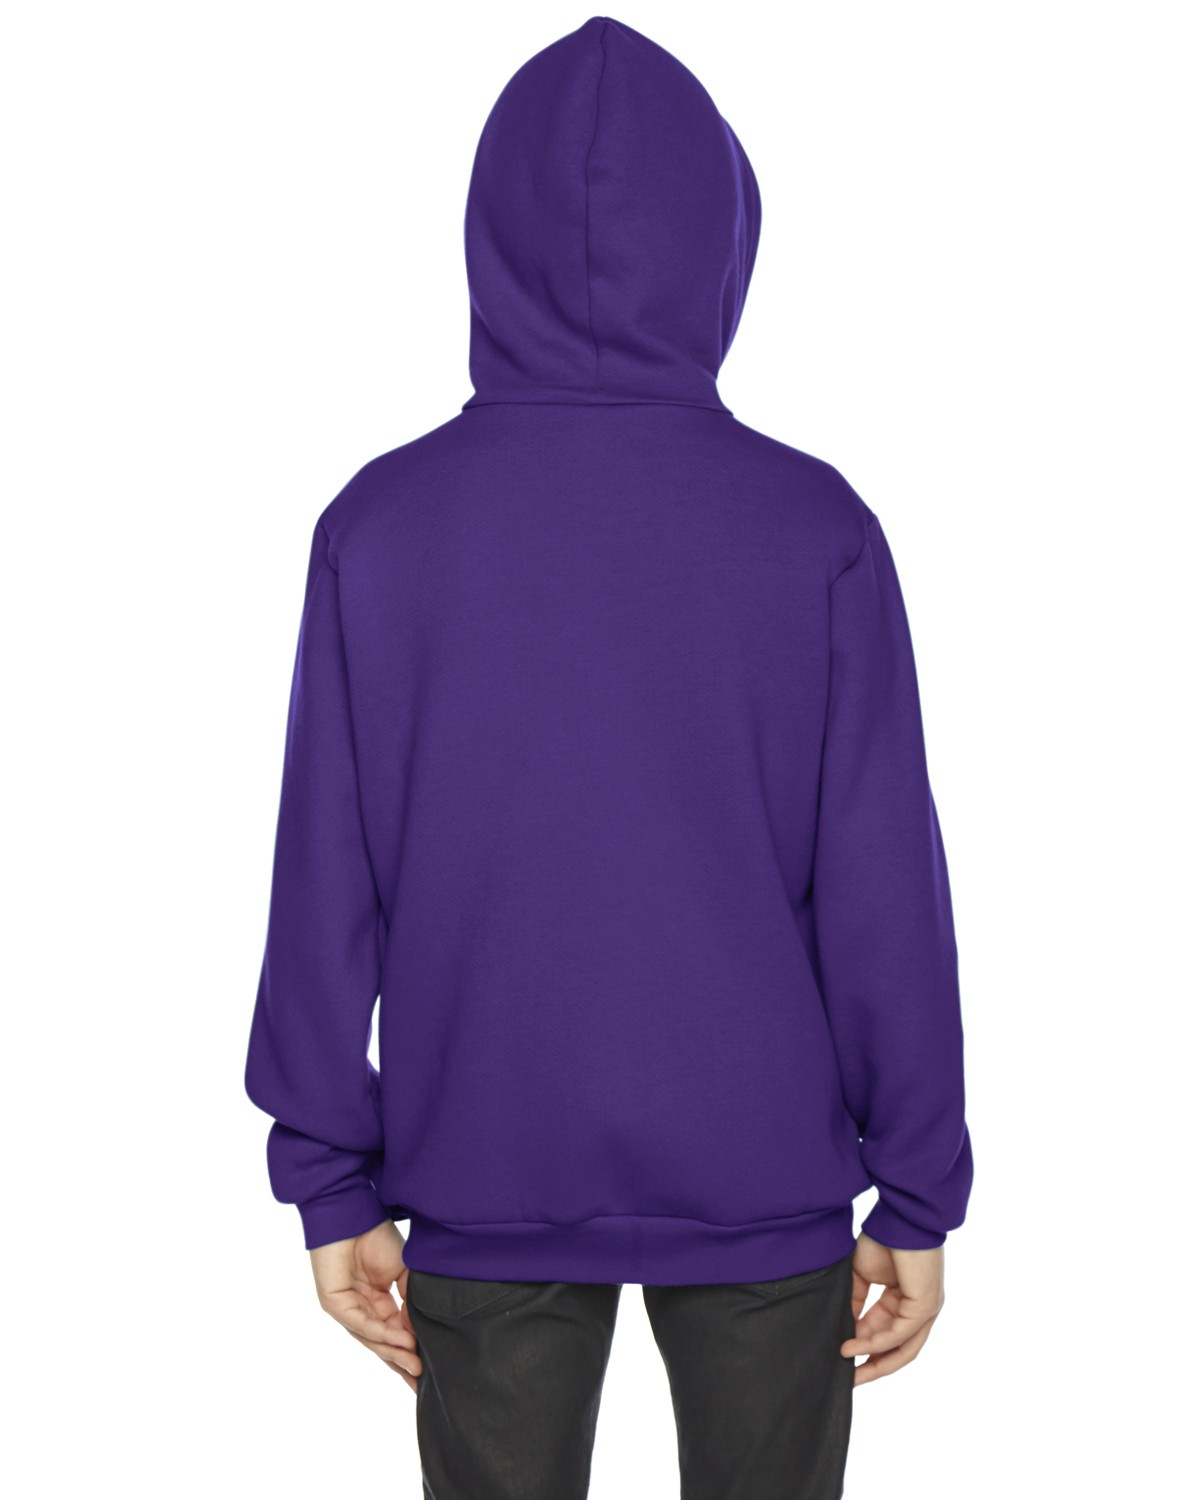 F297W American Apparel PURPLE